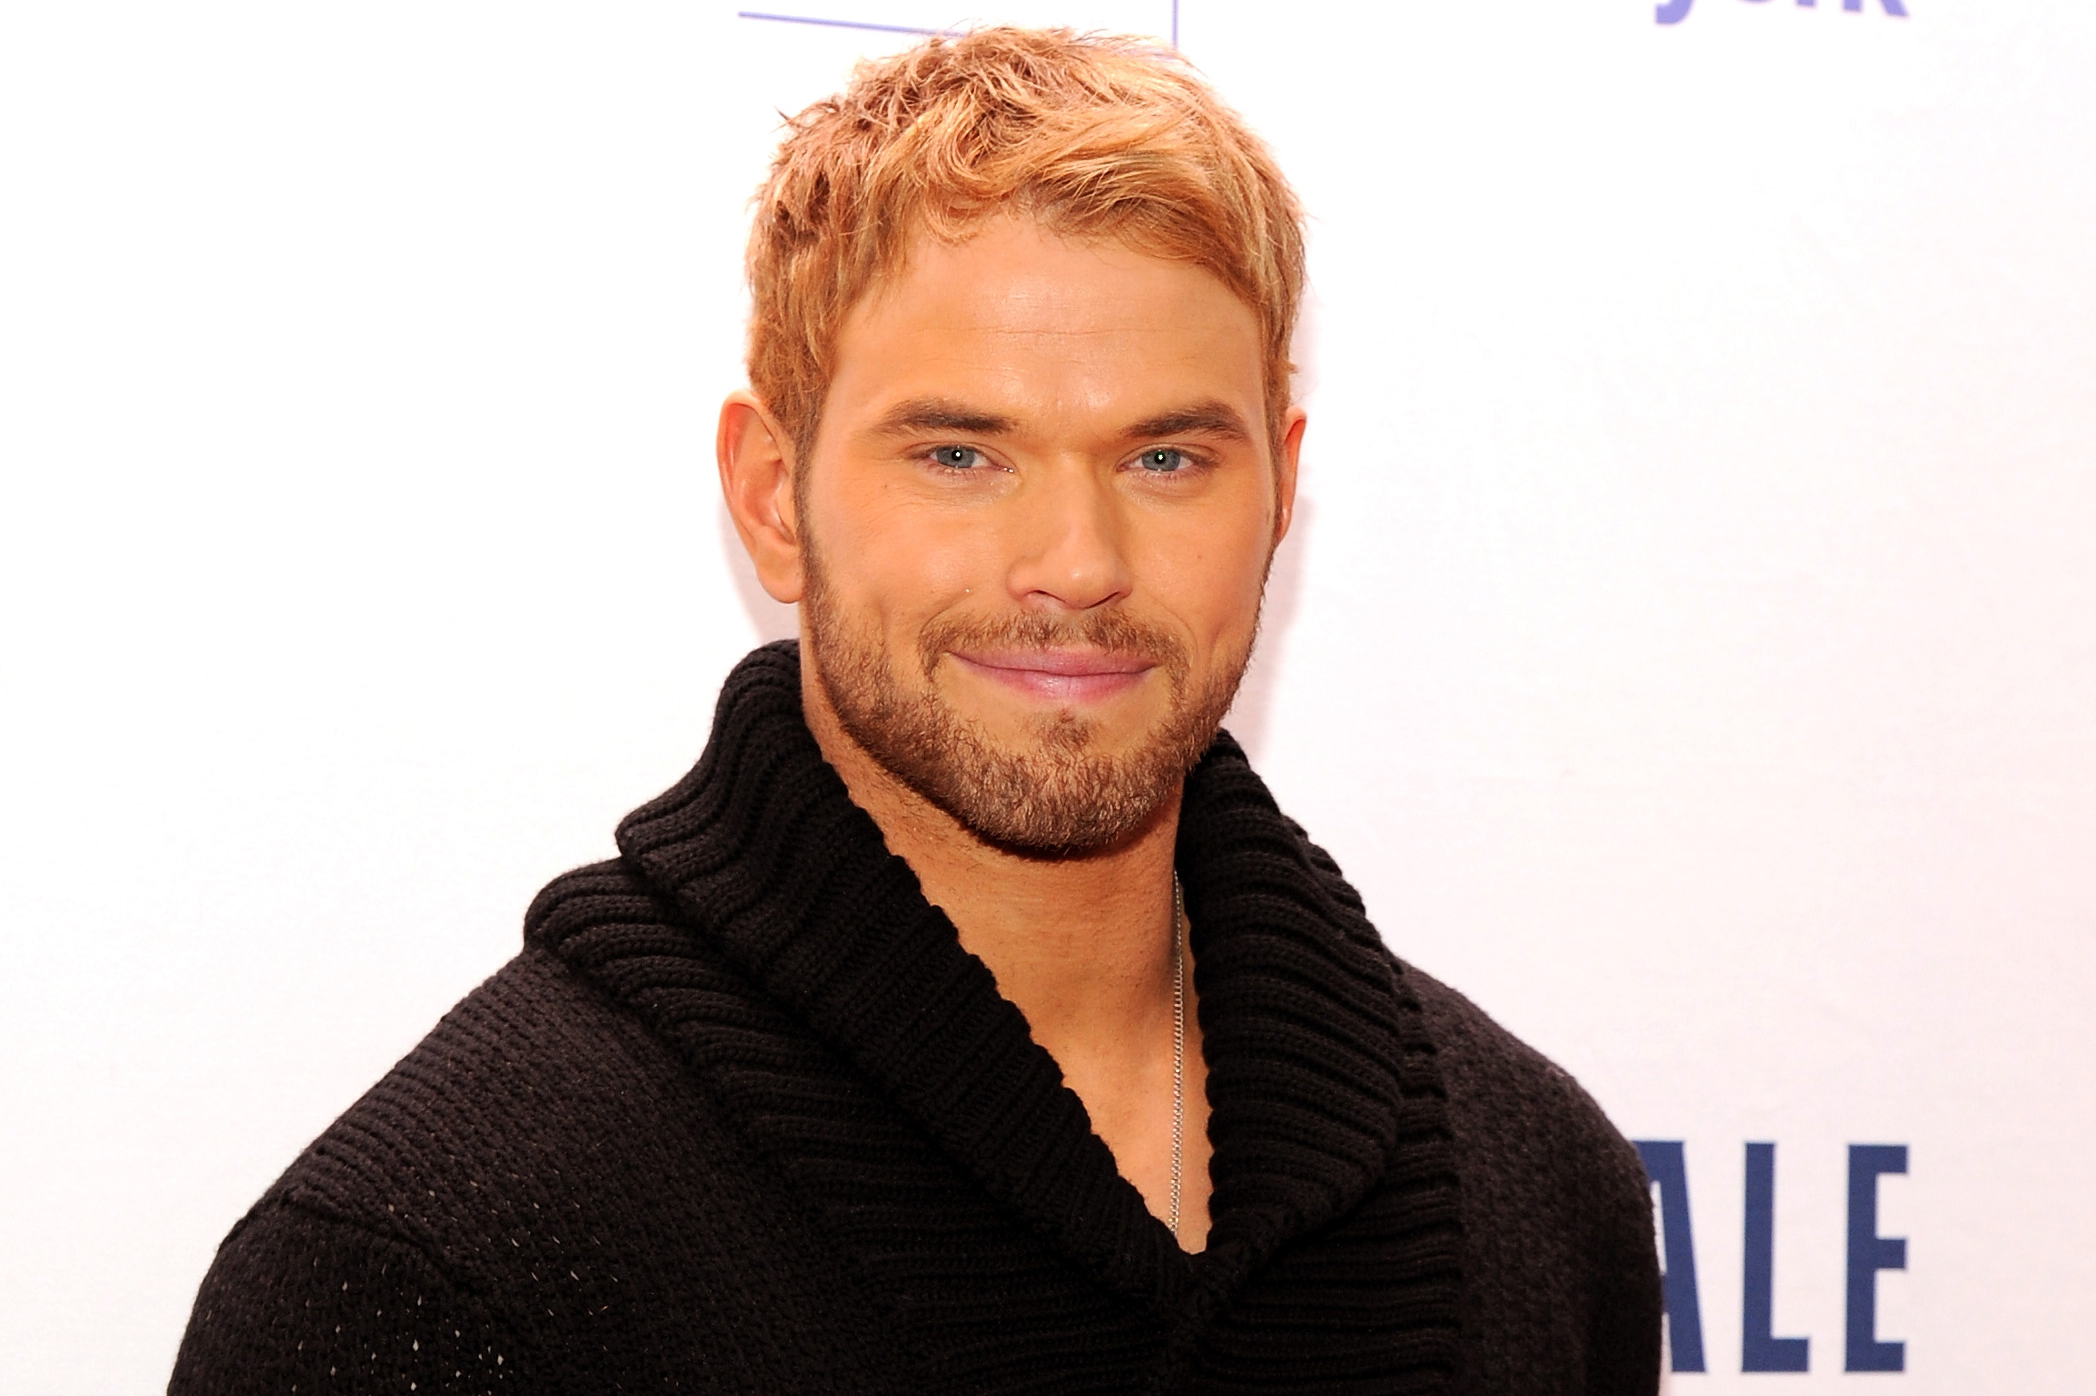 NEW YORK, NY - DECEMBER 13: Actor Kellan Lutz attends Z100's Jingle Ball 2013, presented by Aeropostale, at Madison Square Garden on December 13, 2013 in New York City. (Photo by Bryan Bedder/Getty Images for Clear Channel)